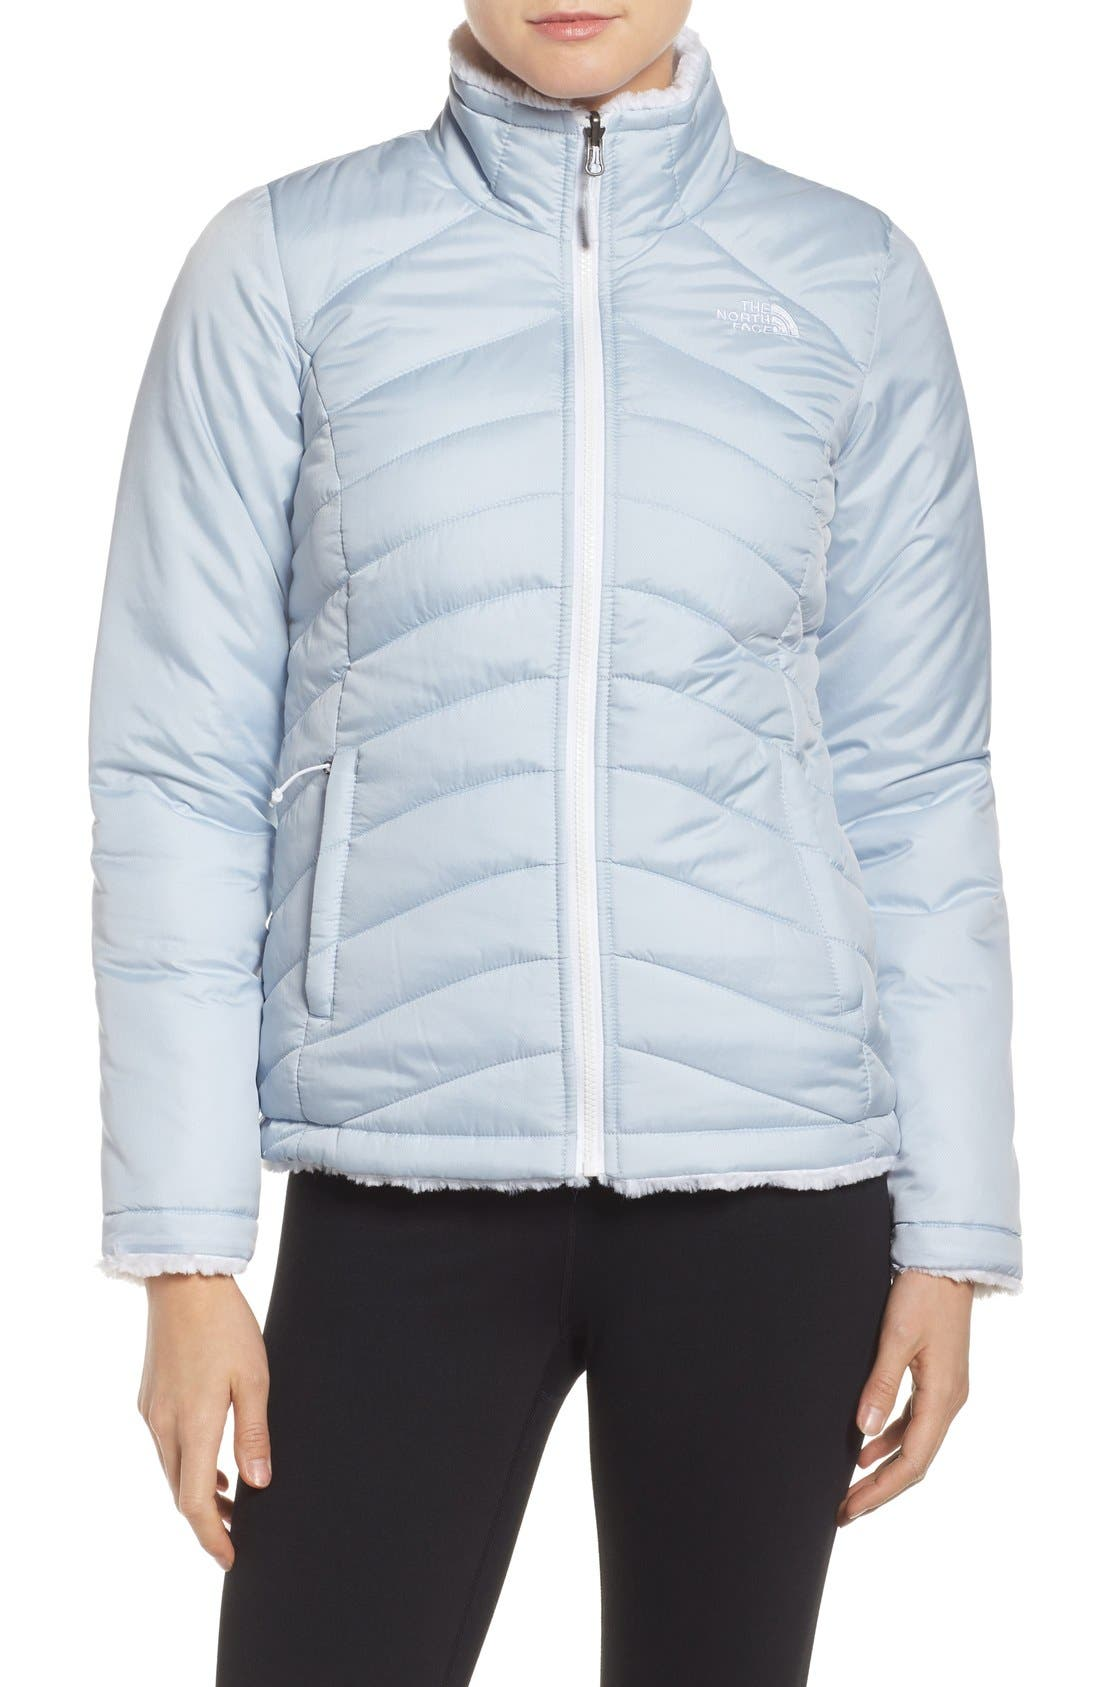 Alternate Image 1 Selected - The North Face 'Mossbud Swirl' Water Resistant Jacket